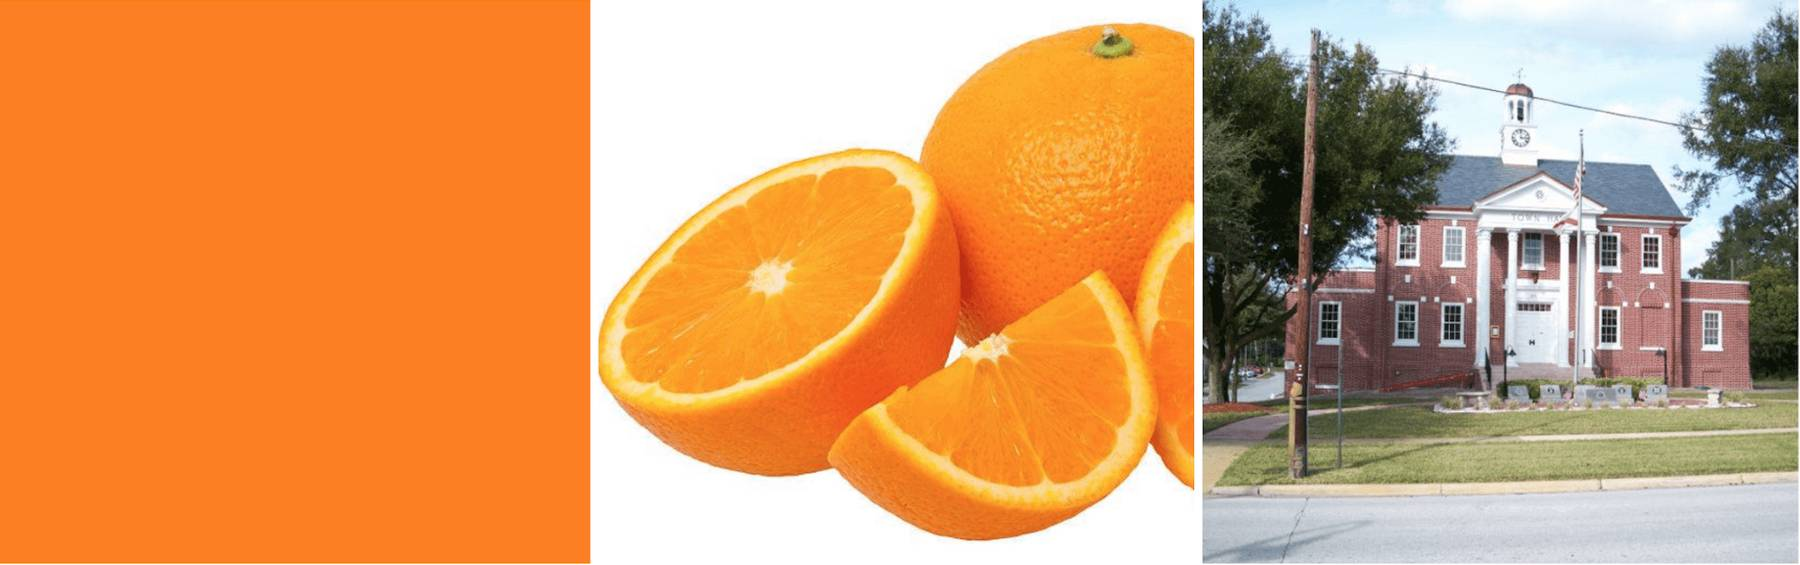 """An image showing different meanings of the word """"orange"""". Semantic Analysis"""